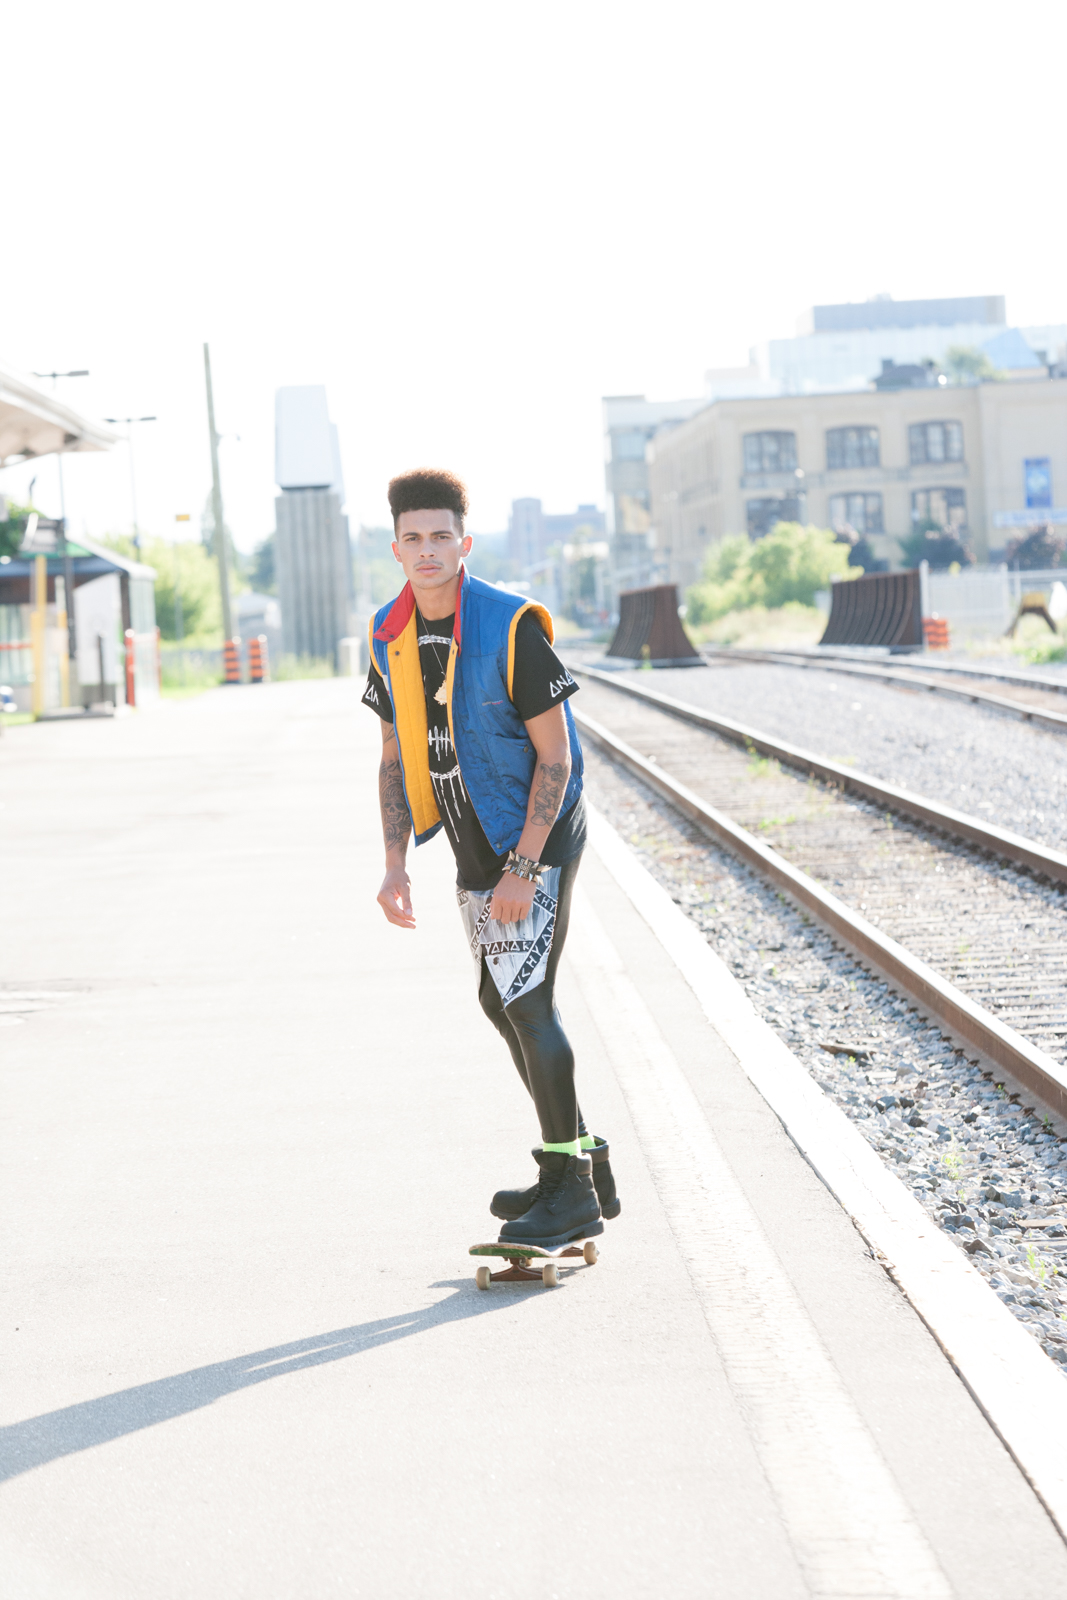 Brandon is killing it on the skateboard! He's wearing an original BMW Racer vest with an Evolve and Rebel tee. He is really the only guy I know that can get away with wearing those slick leggings too!